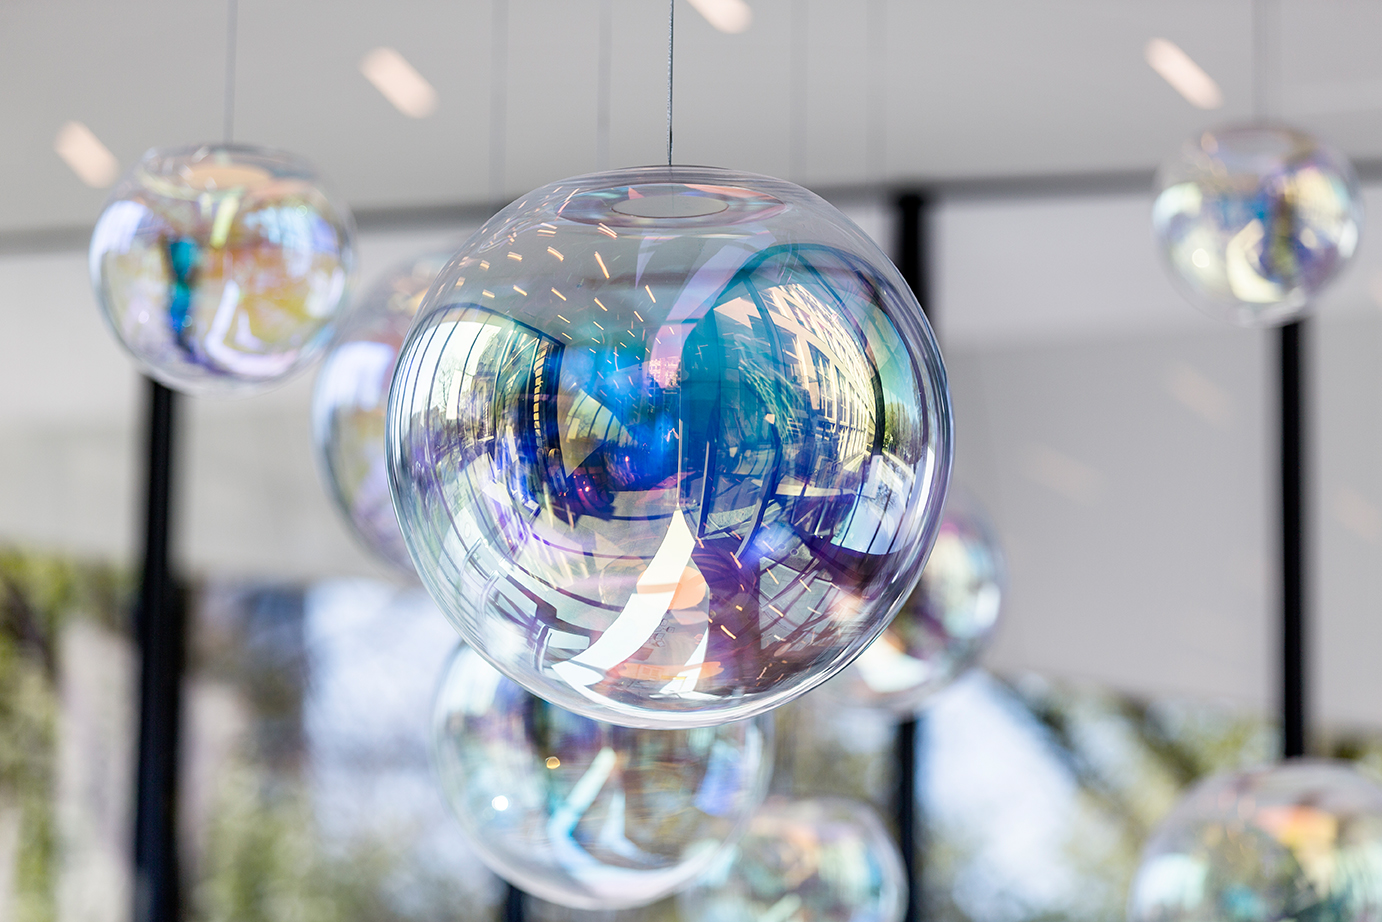 The Iris Pendant Lamp Appears Like A Permanent, Iridescent Soap Bubble.